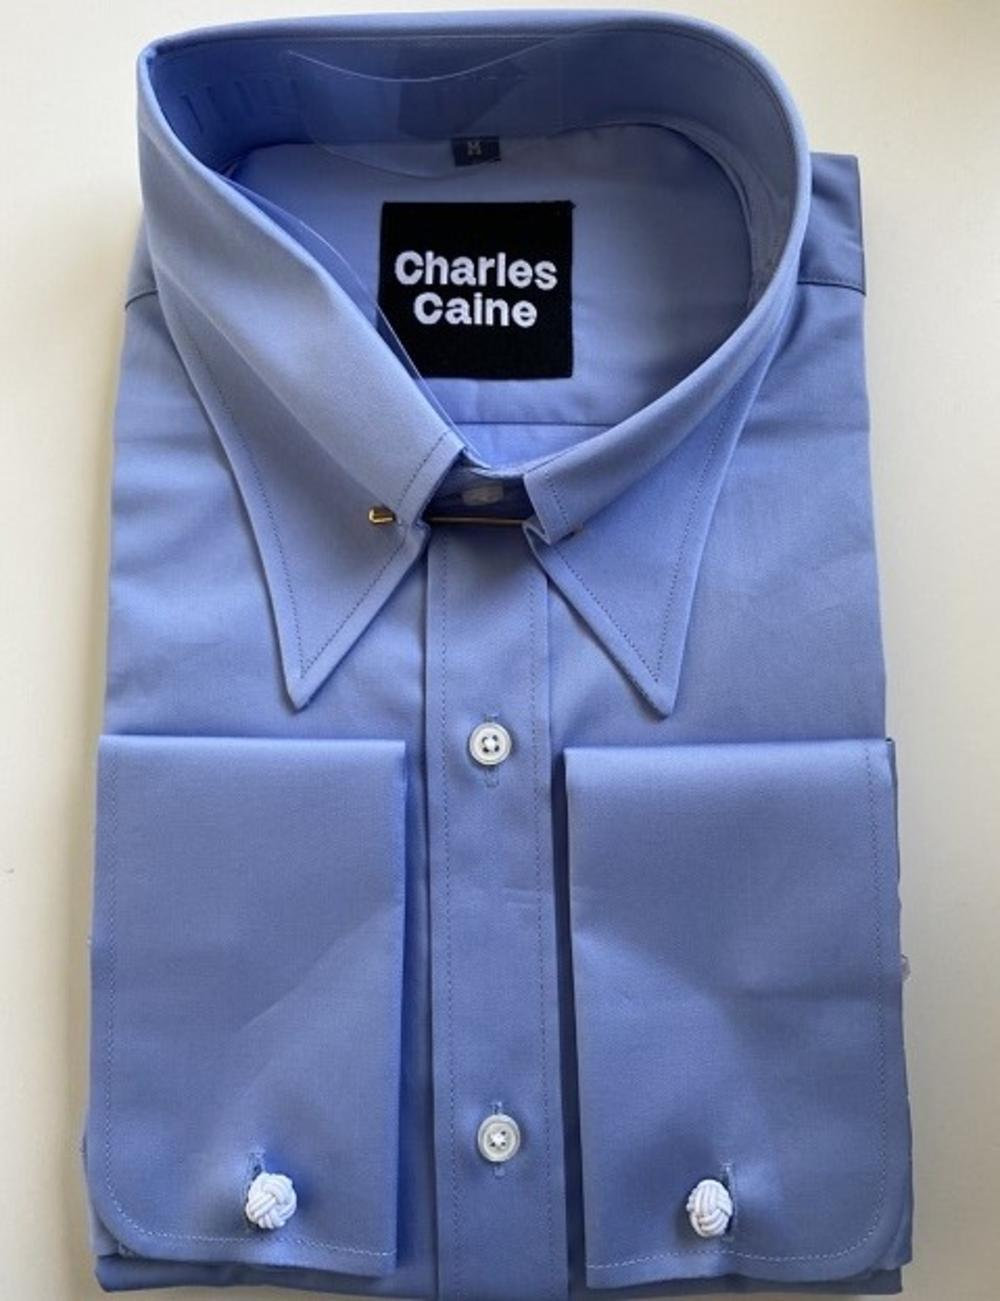 Charles Caine Sea Island Poplin Pin Spearpoint Collar Shirt Blue